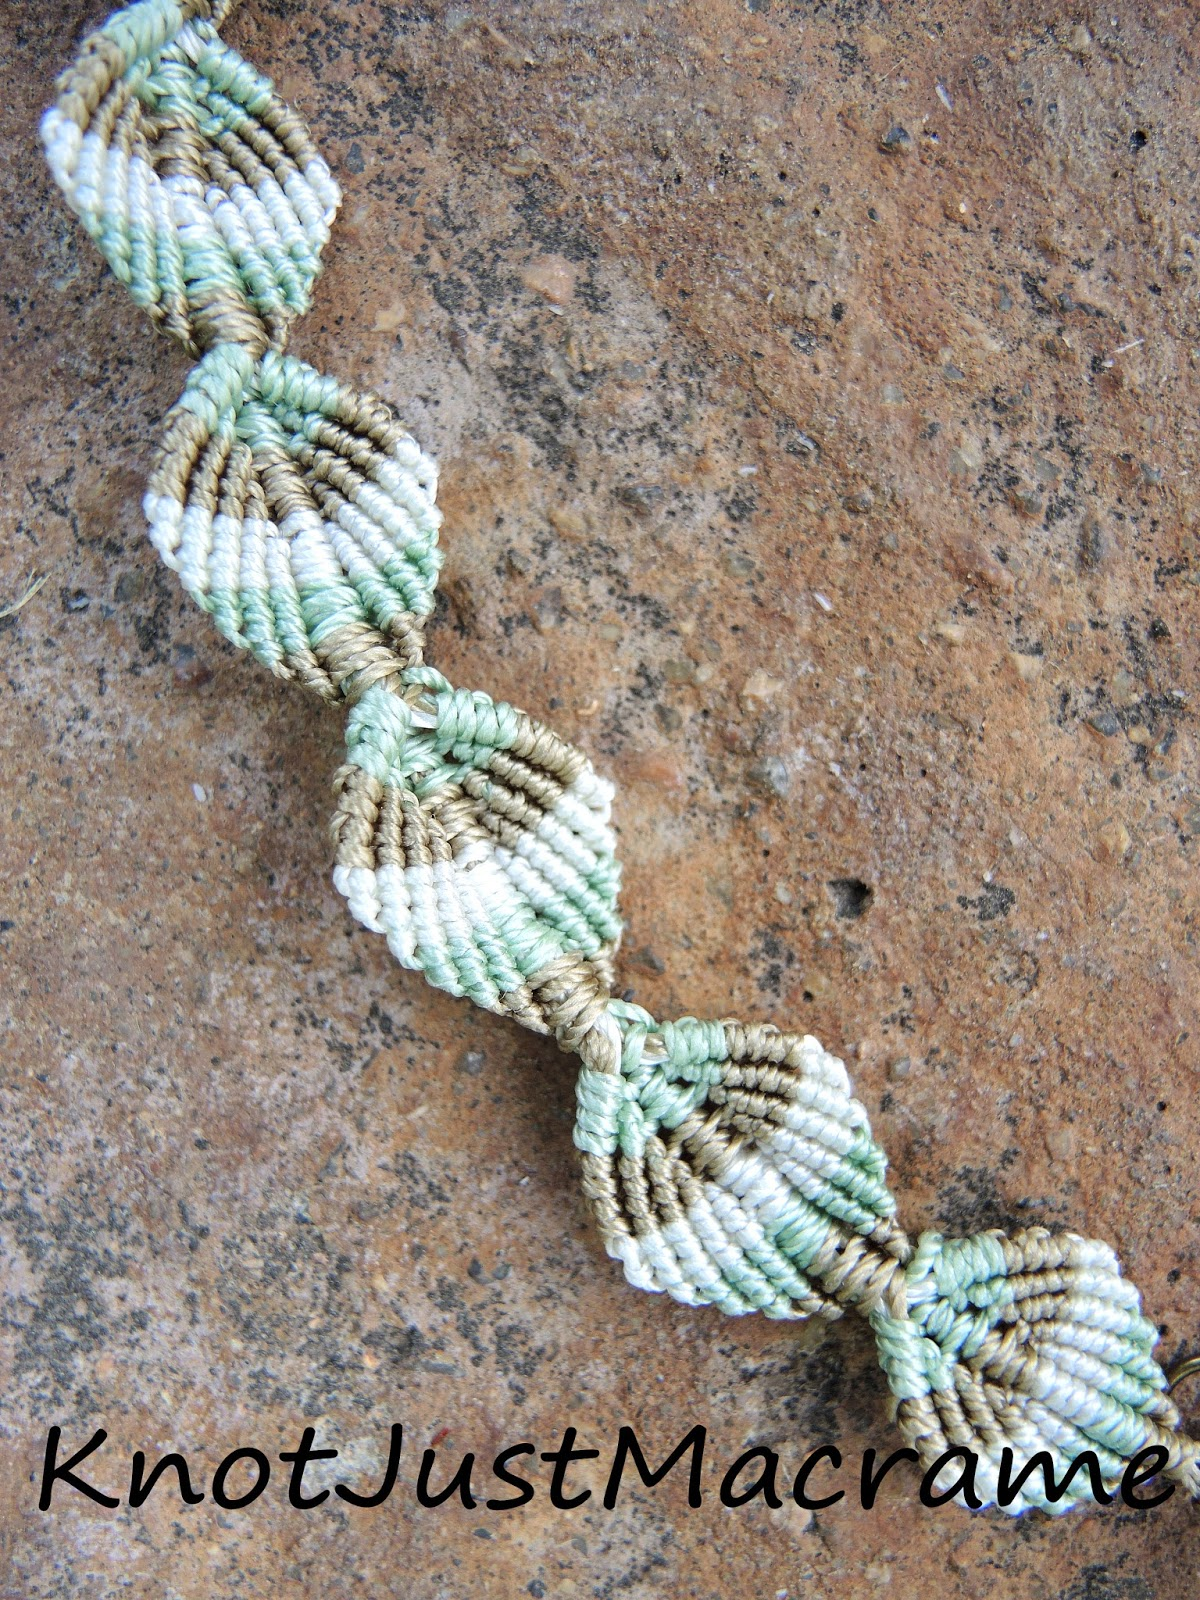 Macrame leaf design